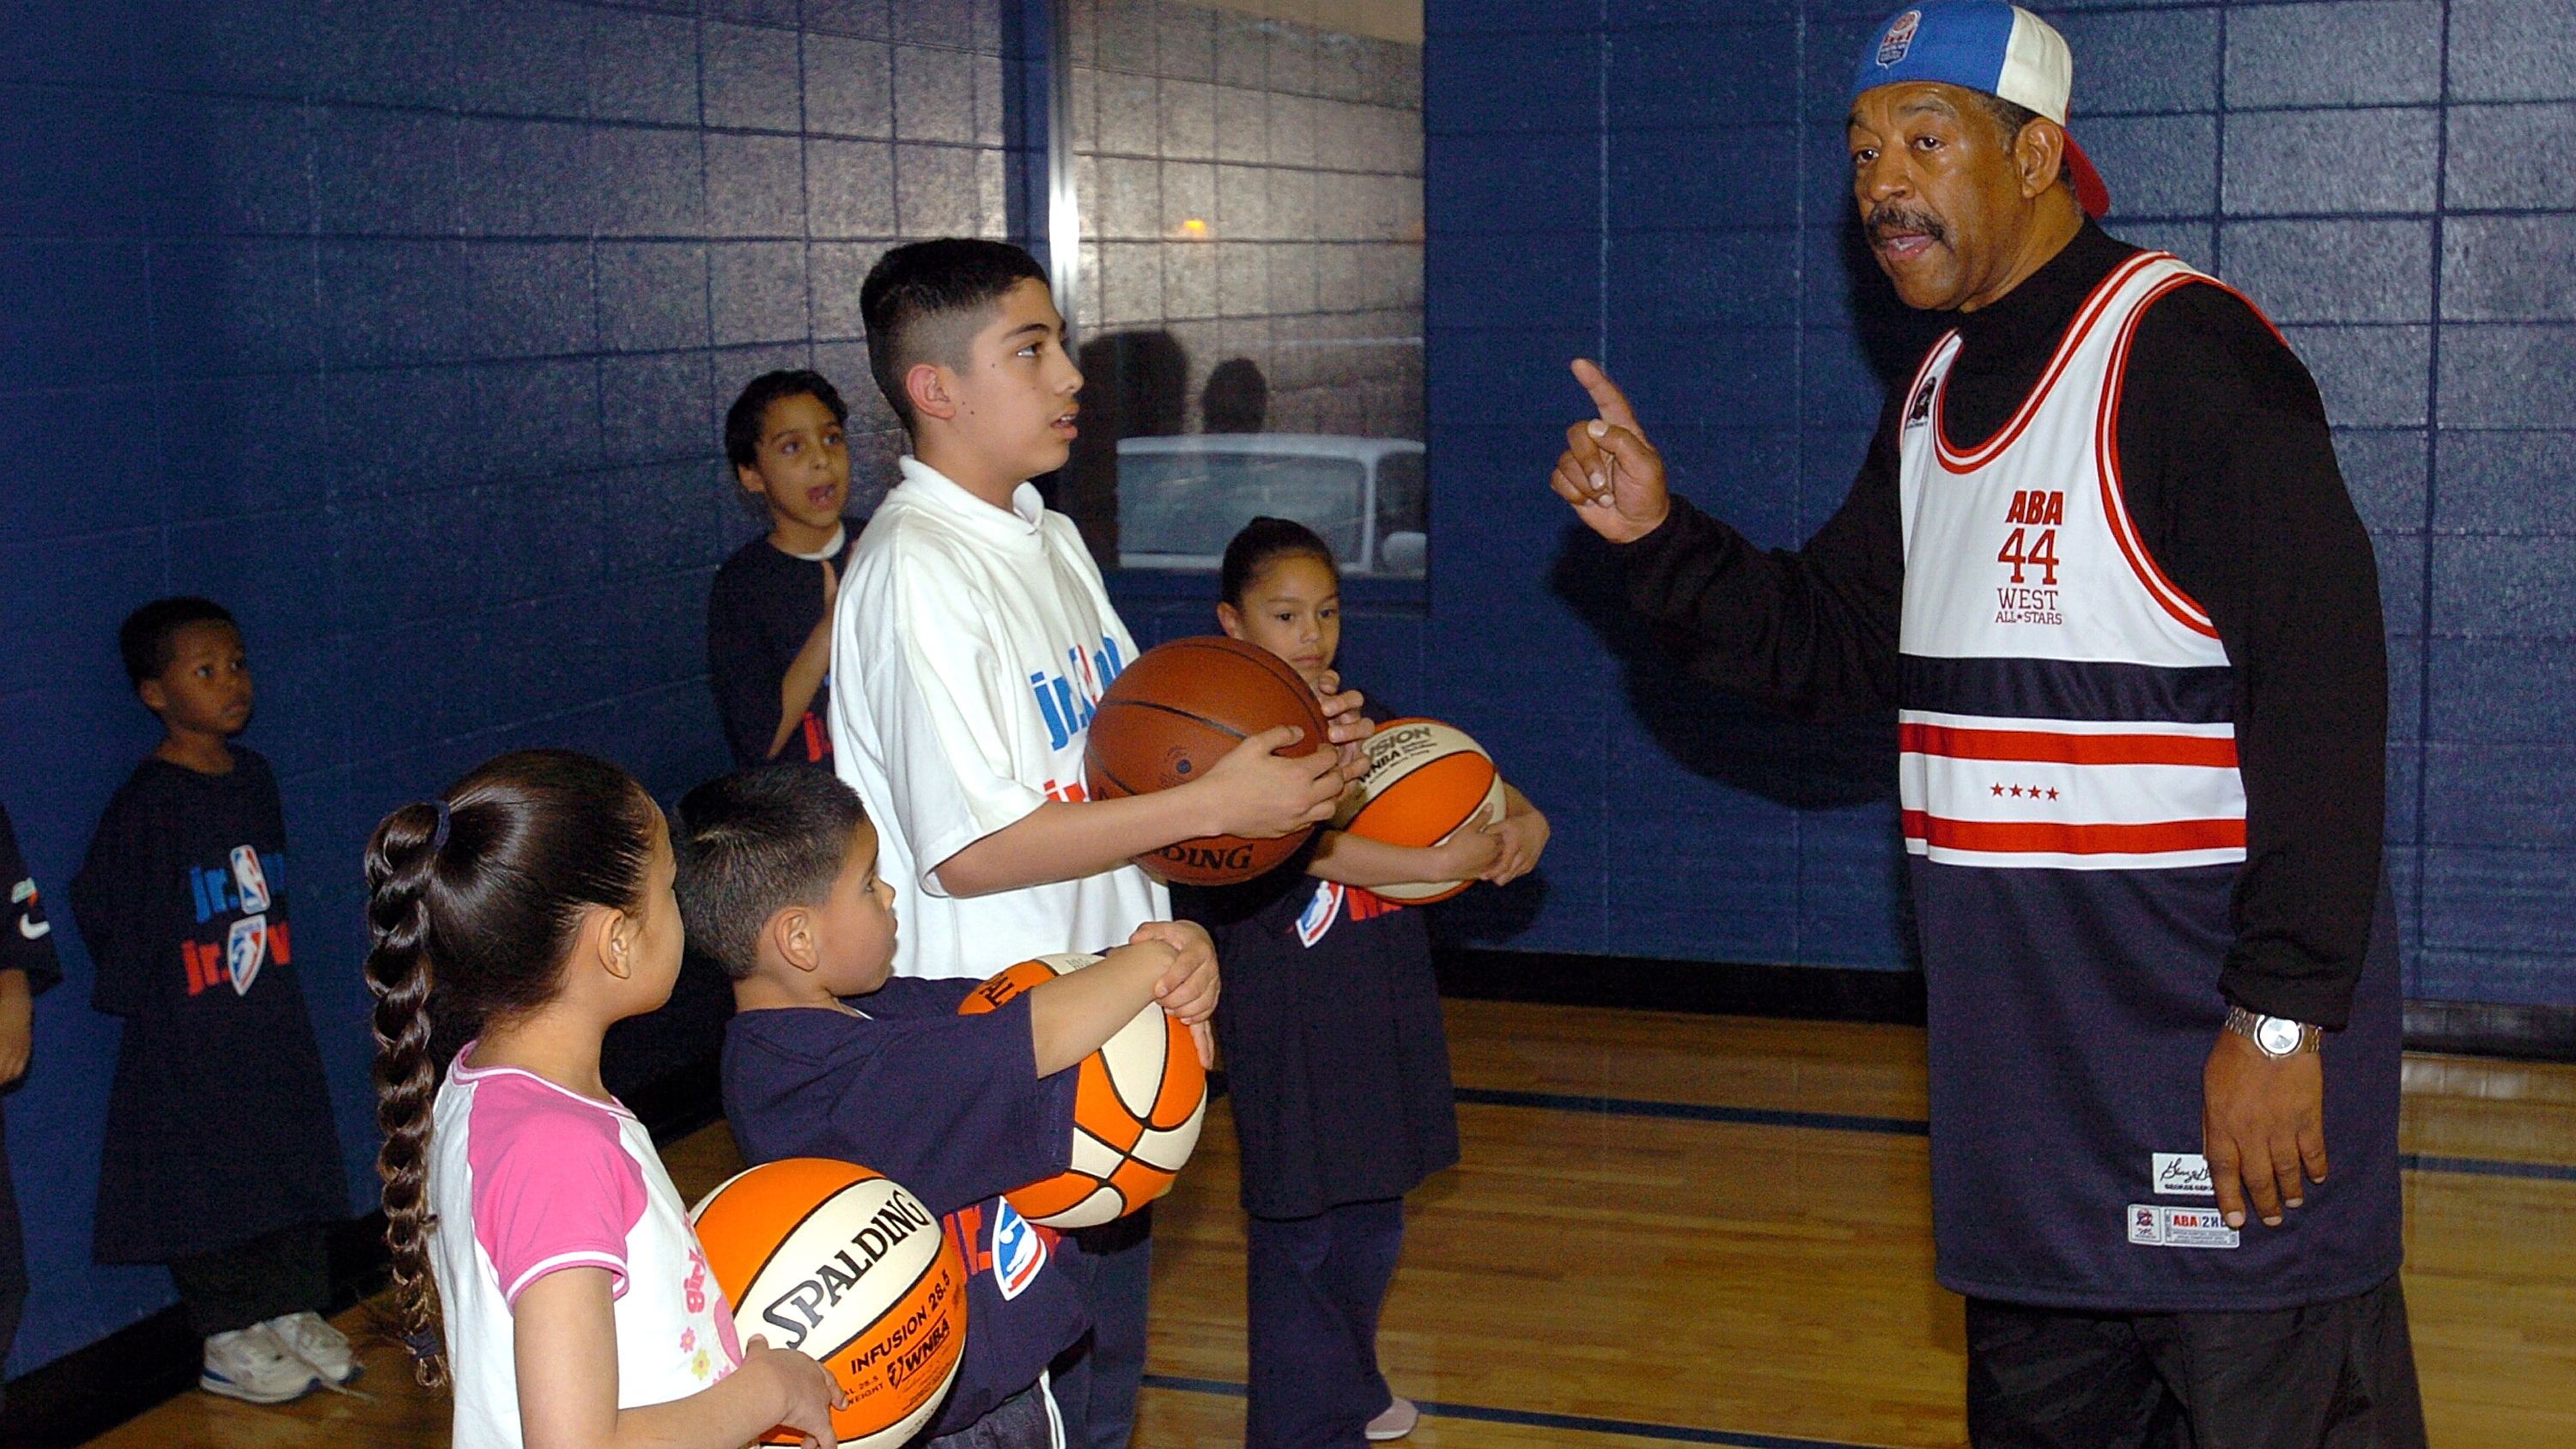 Jr. NBA/WNBA Basketball And Books Clinics